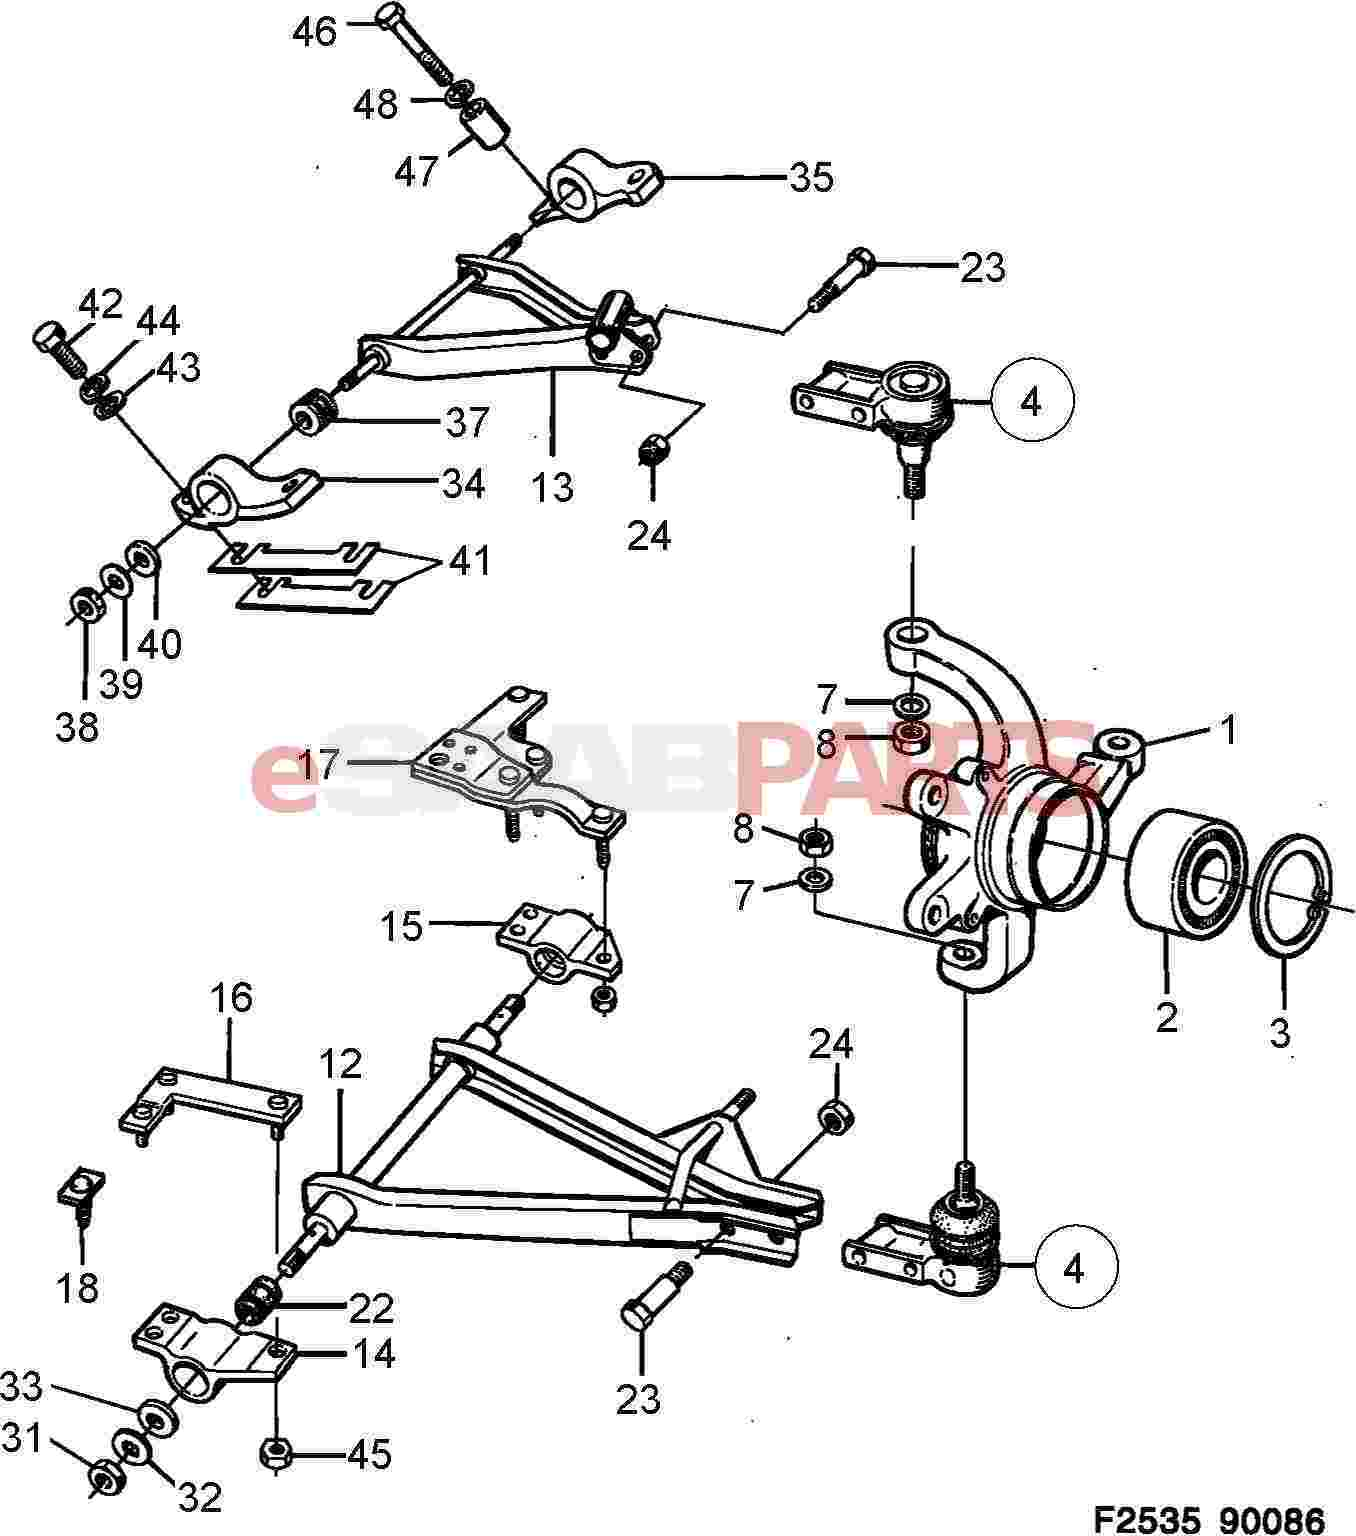 2000 pontiac montana engine diagram get free image about wiring